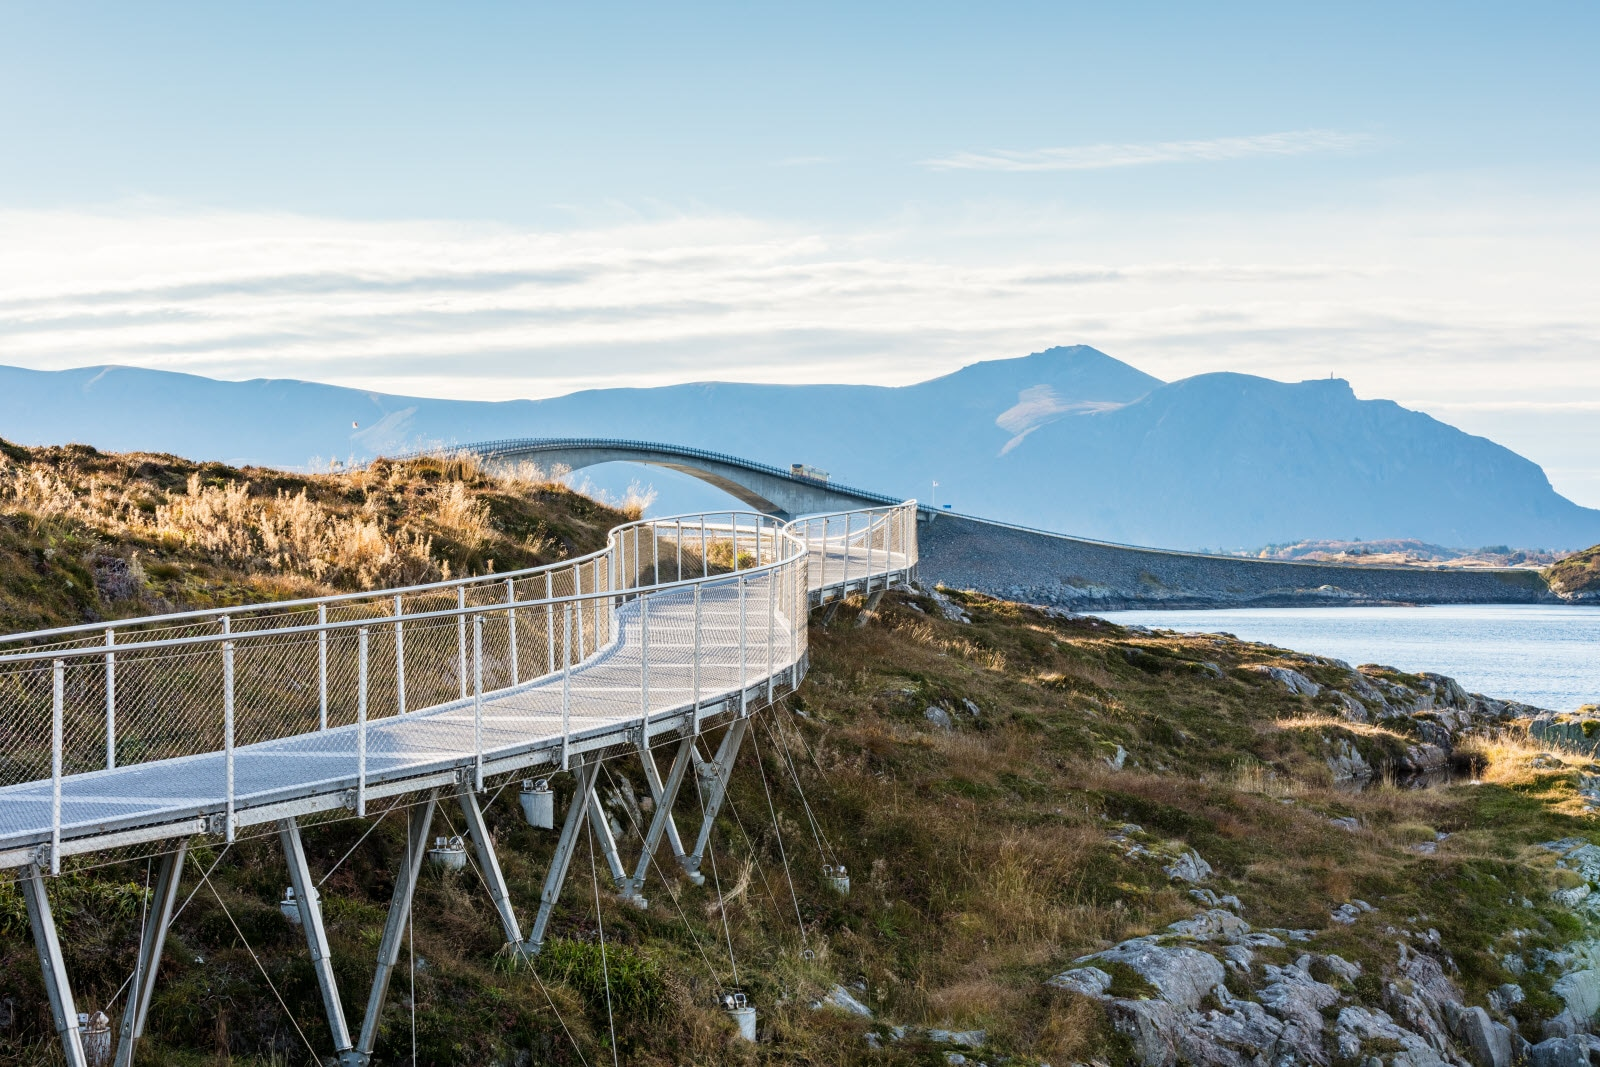 The Atlantic Road National Tourist Route